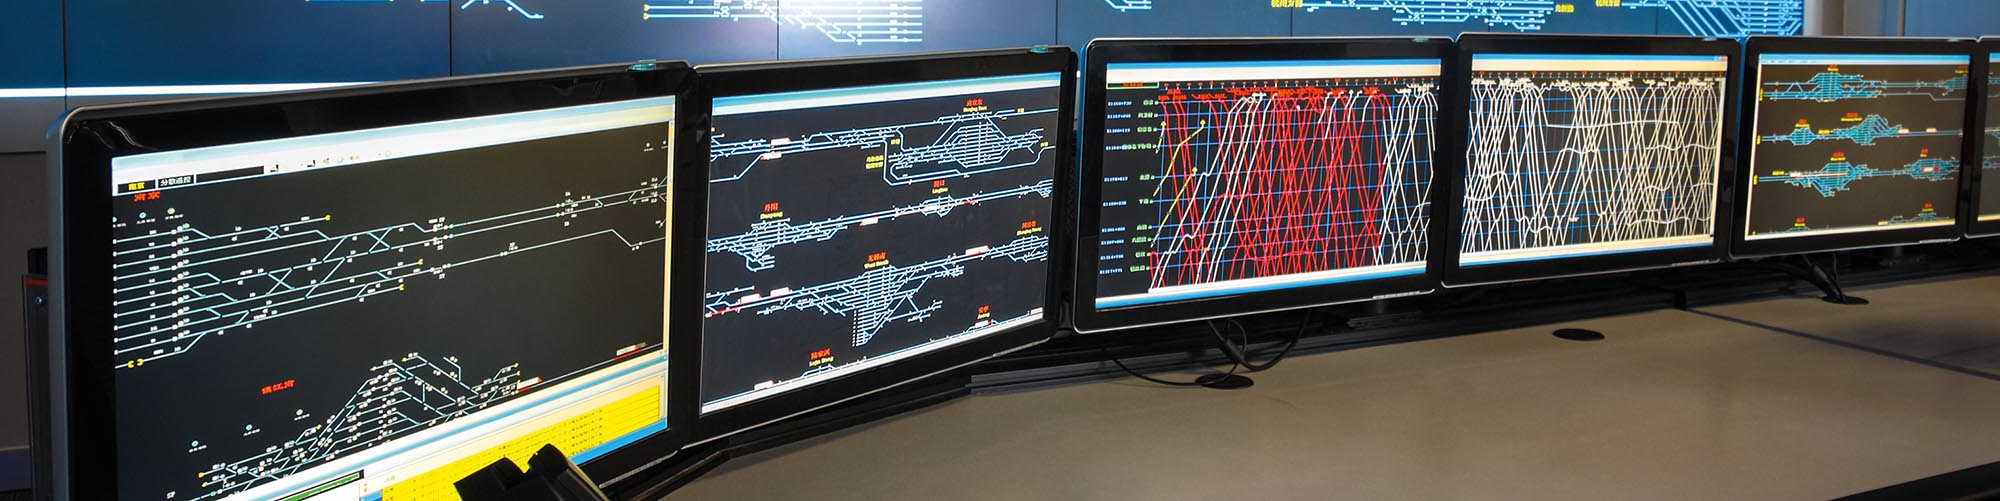 Information advantage for control rooms